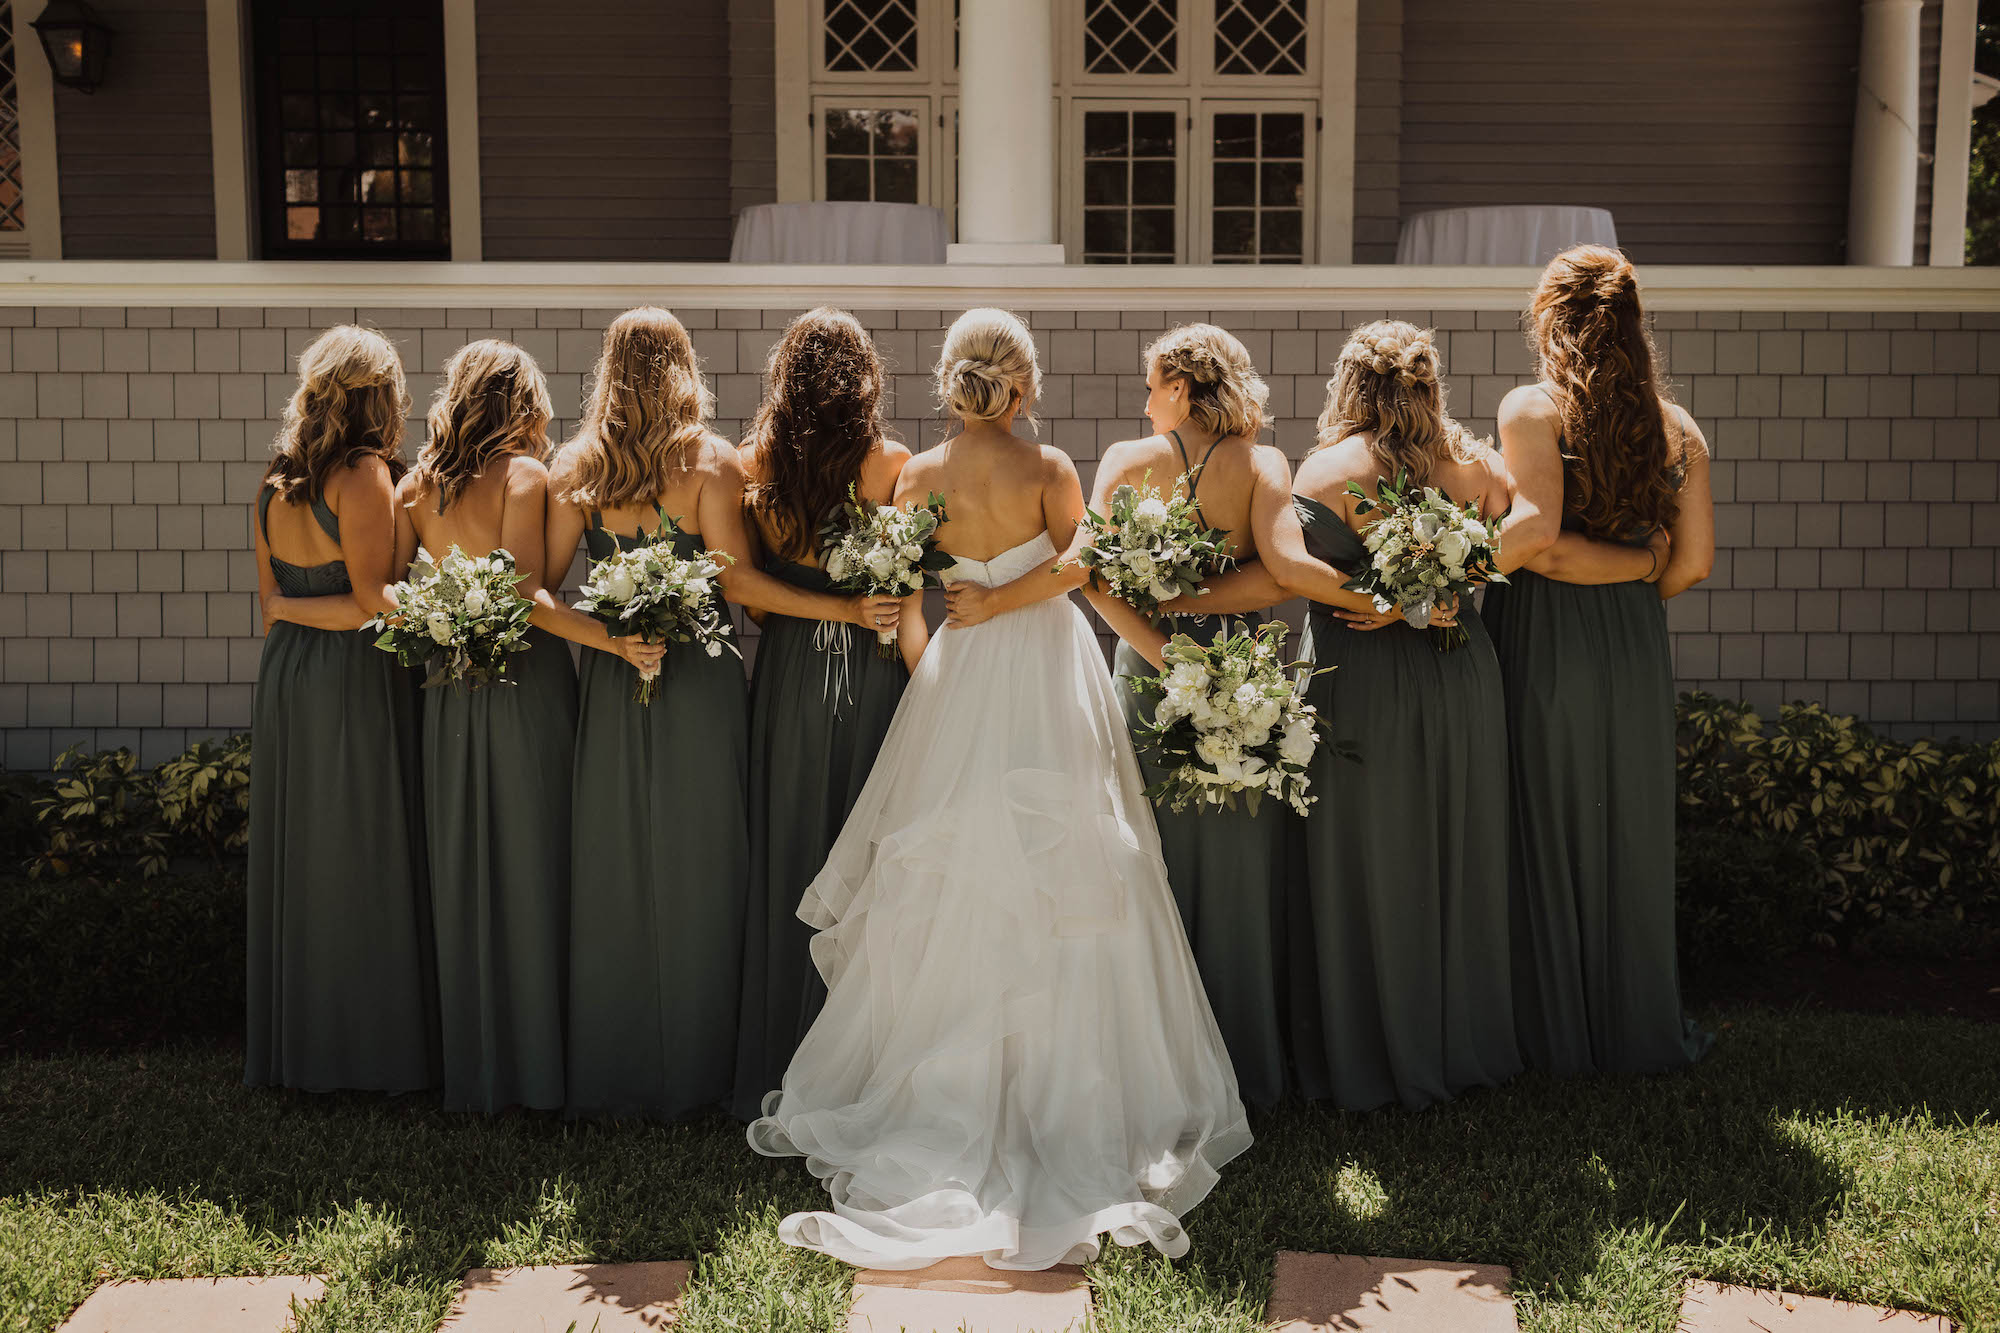 Tampa Bay Bride and Bridesmaids in Mix and Match Eucalyptus Green Dresses Holding Garden Inspired White Roses and Greenery Floral Bouquets